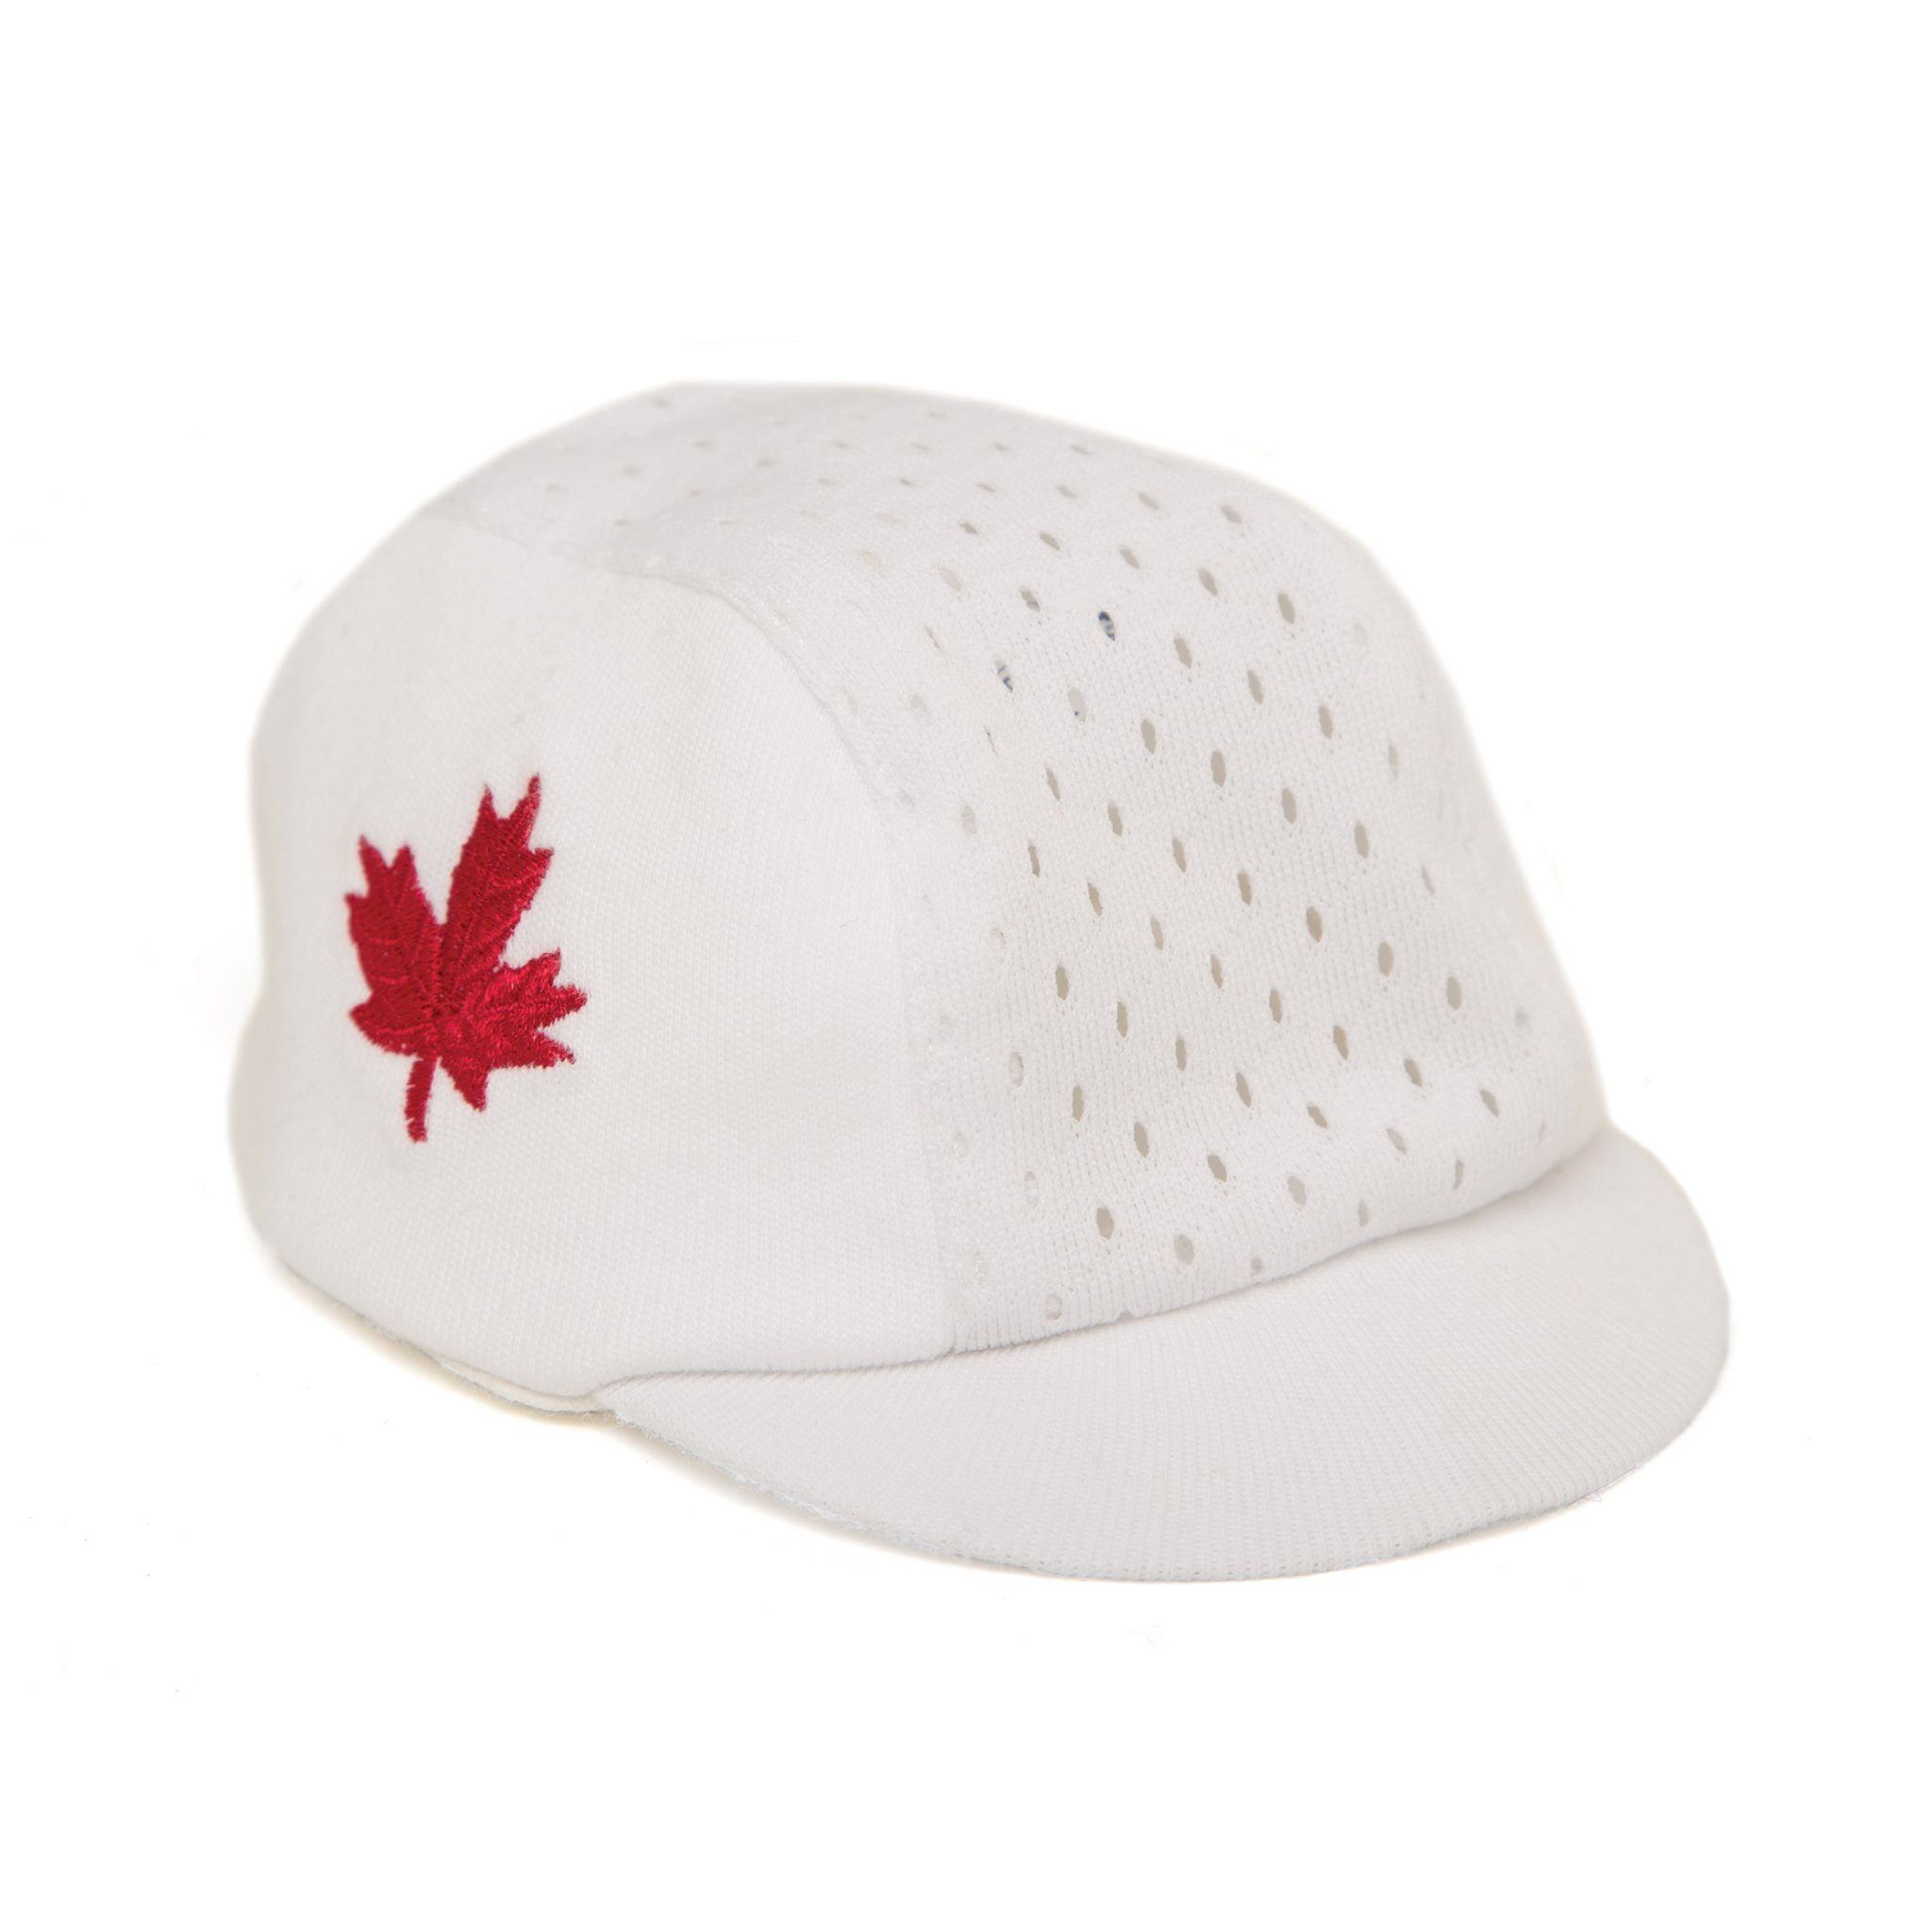 Canada Day Outfit runners cap fits all 18 inch dolls.